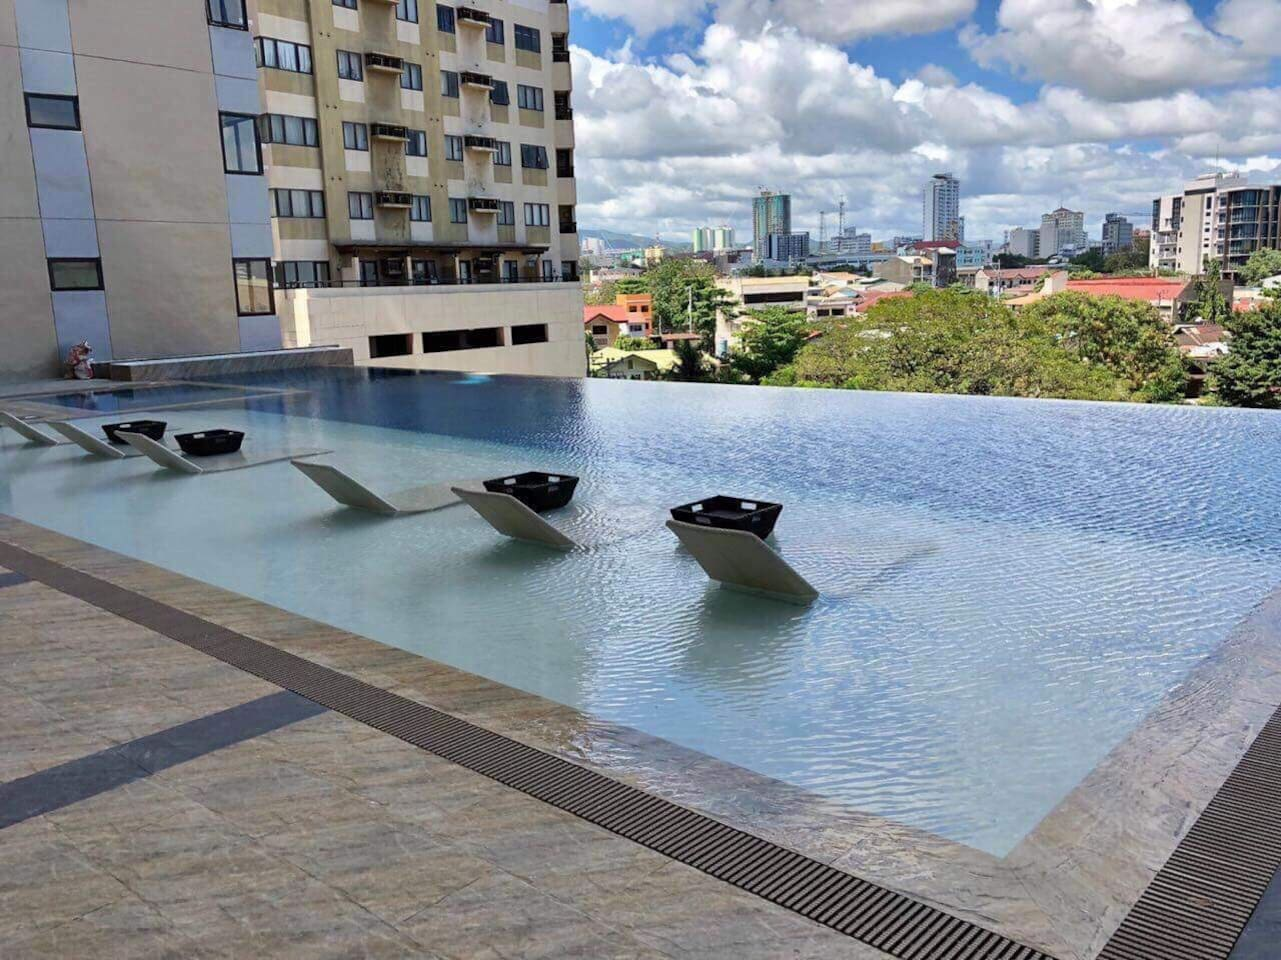 Infinity pool at the 6th floor where you can relax and enjoy a breathtaking view of the city